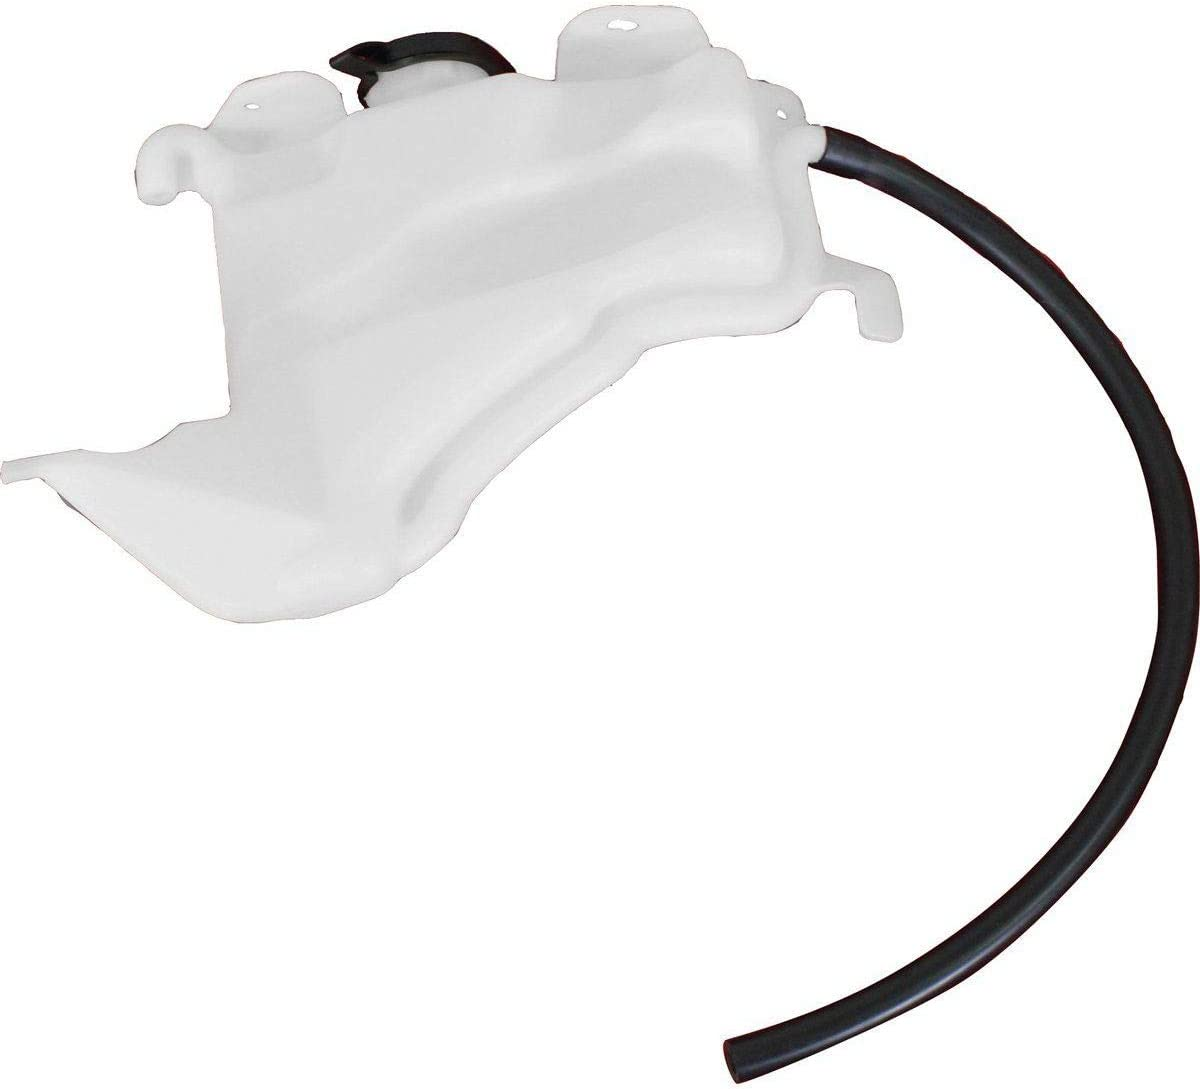 With Cap GM3014148 23159167 Chevrolet Traverse /& Saturn Outlook New Coolant Tank For Assembly 2007-2017 GMC Acadia /& 2007-2014 Buick Enclave